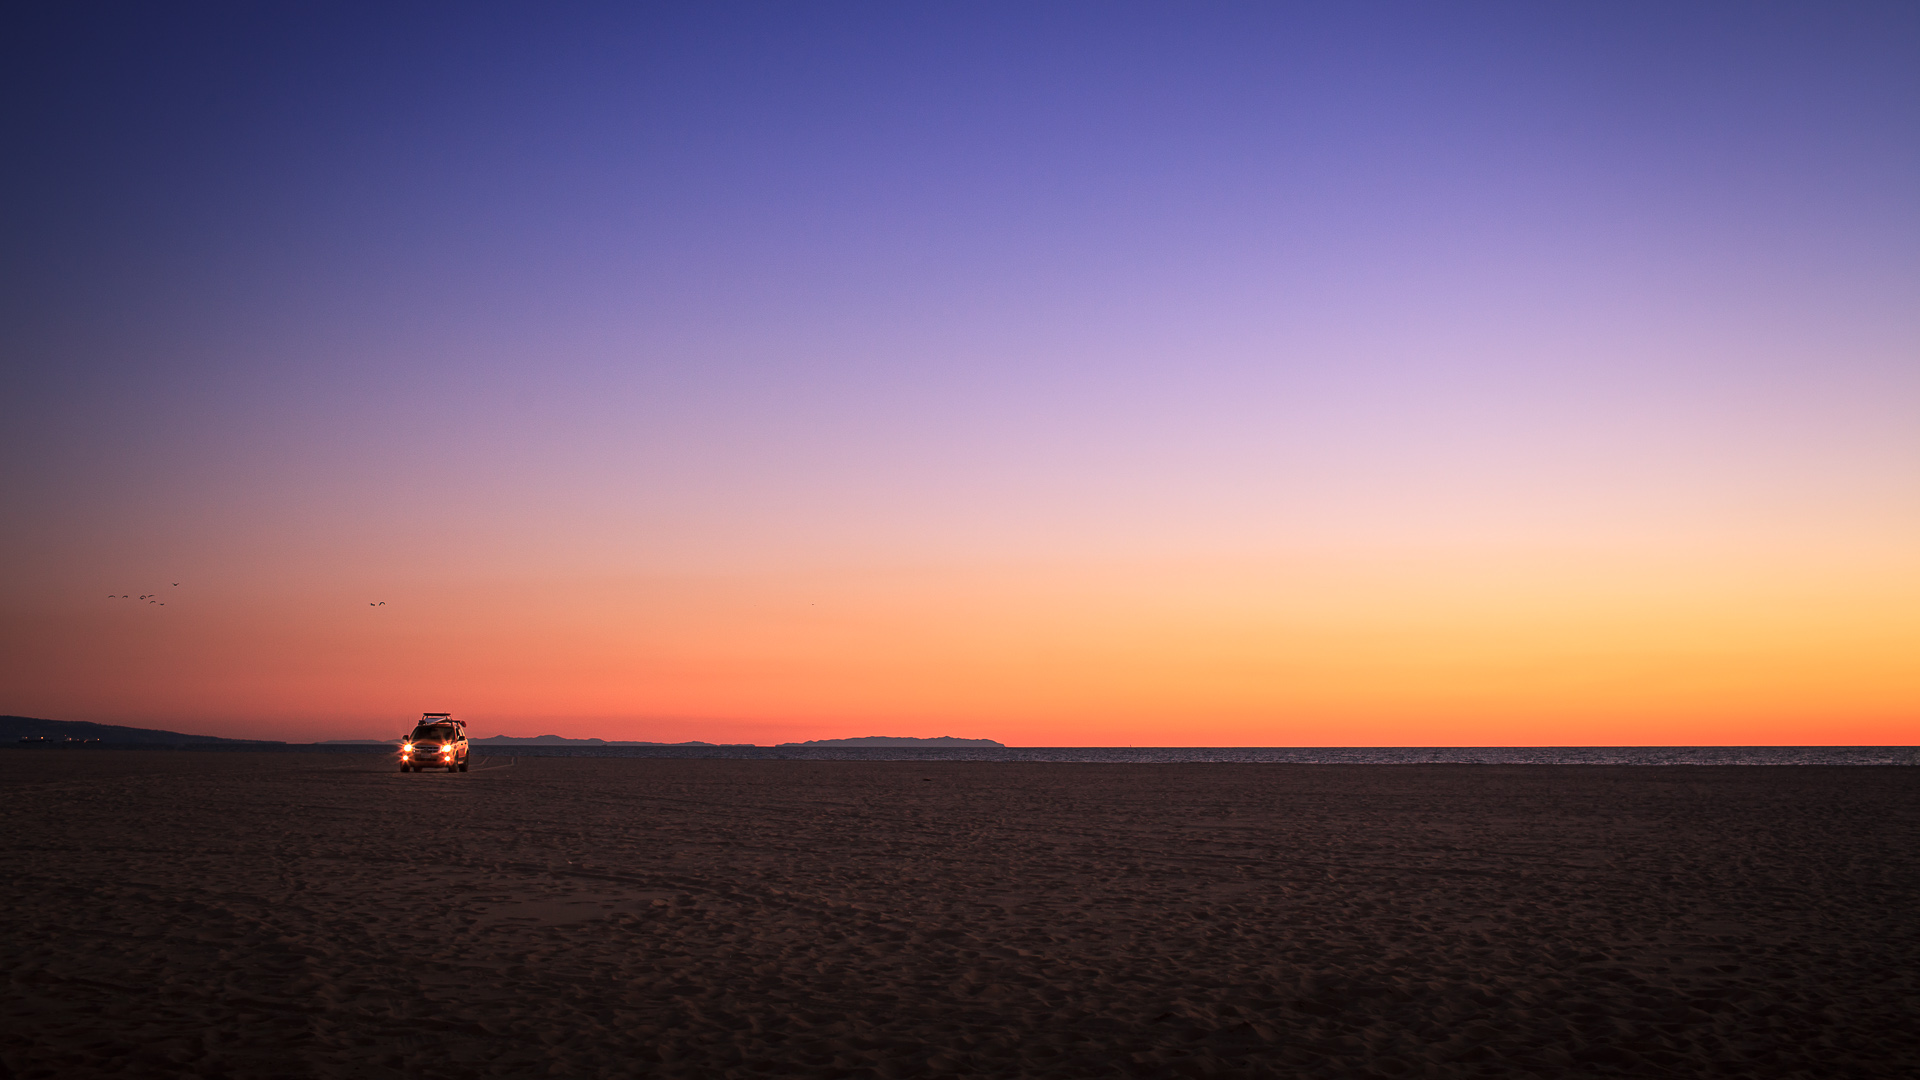 Sunset at Santa Monica beach, with a car over the sand